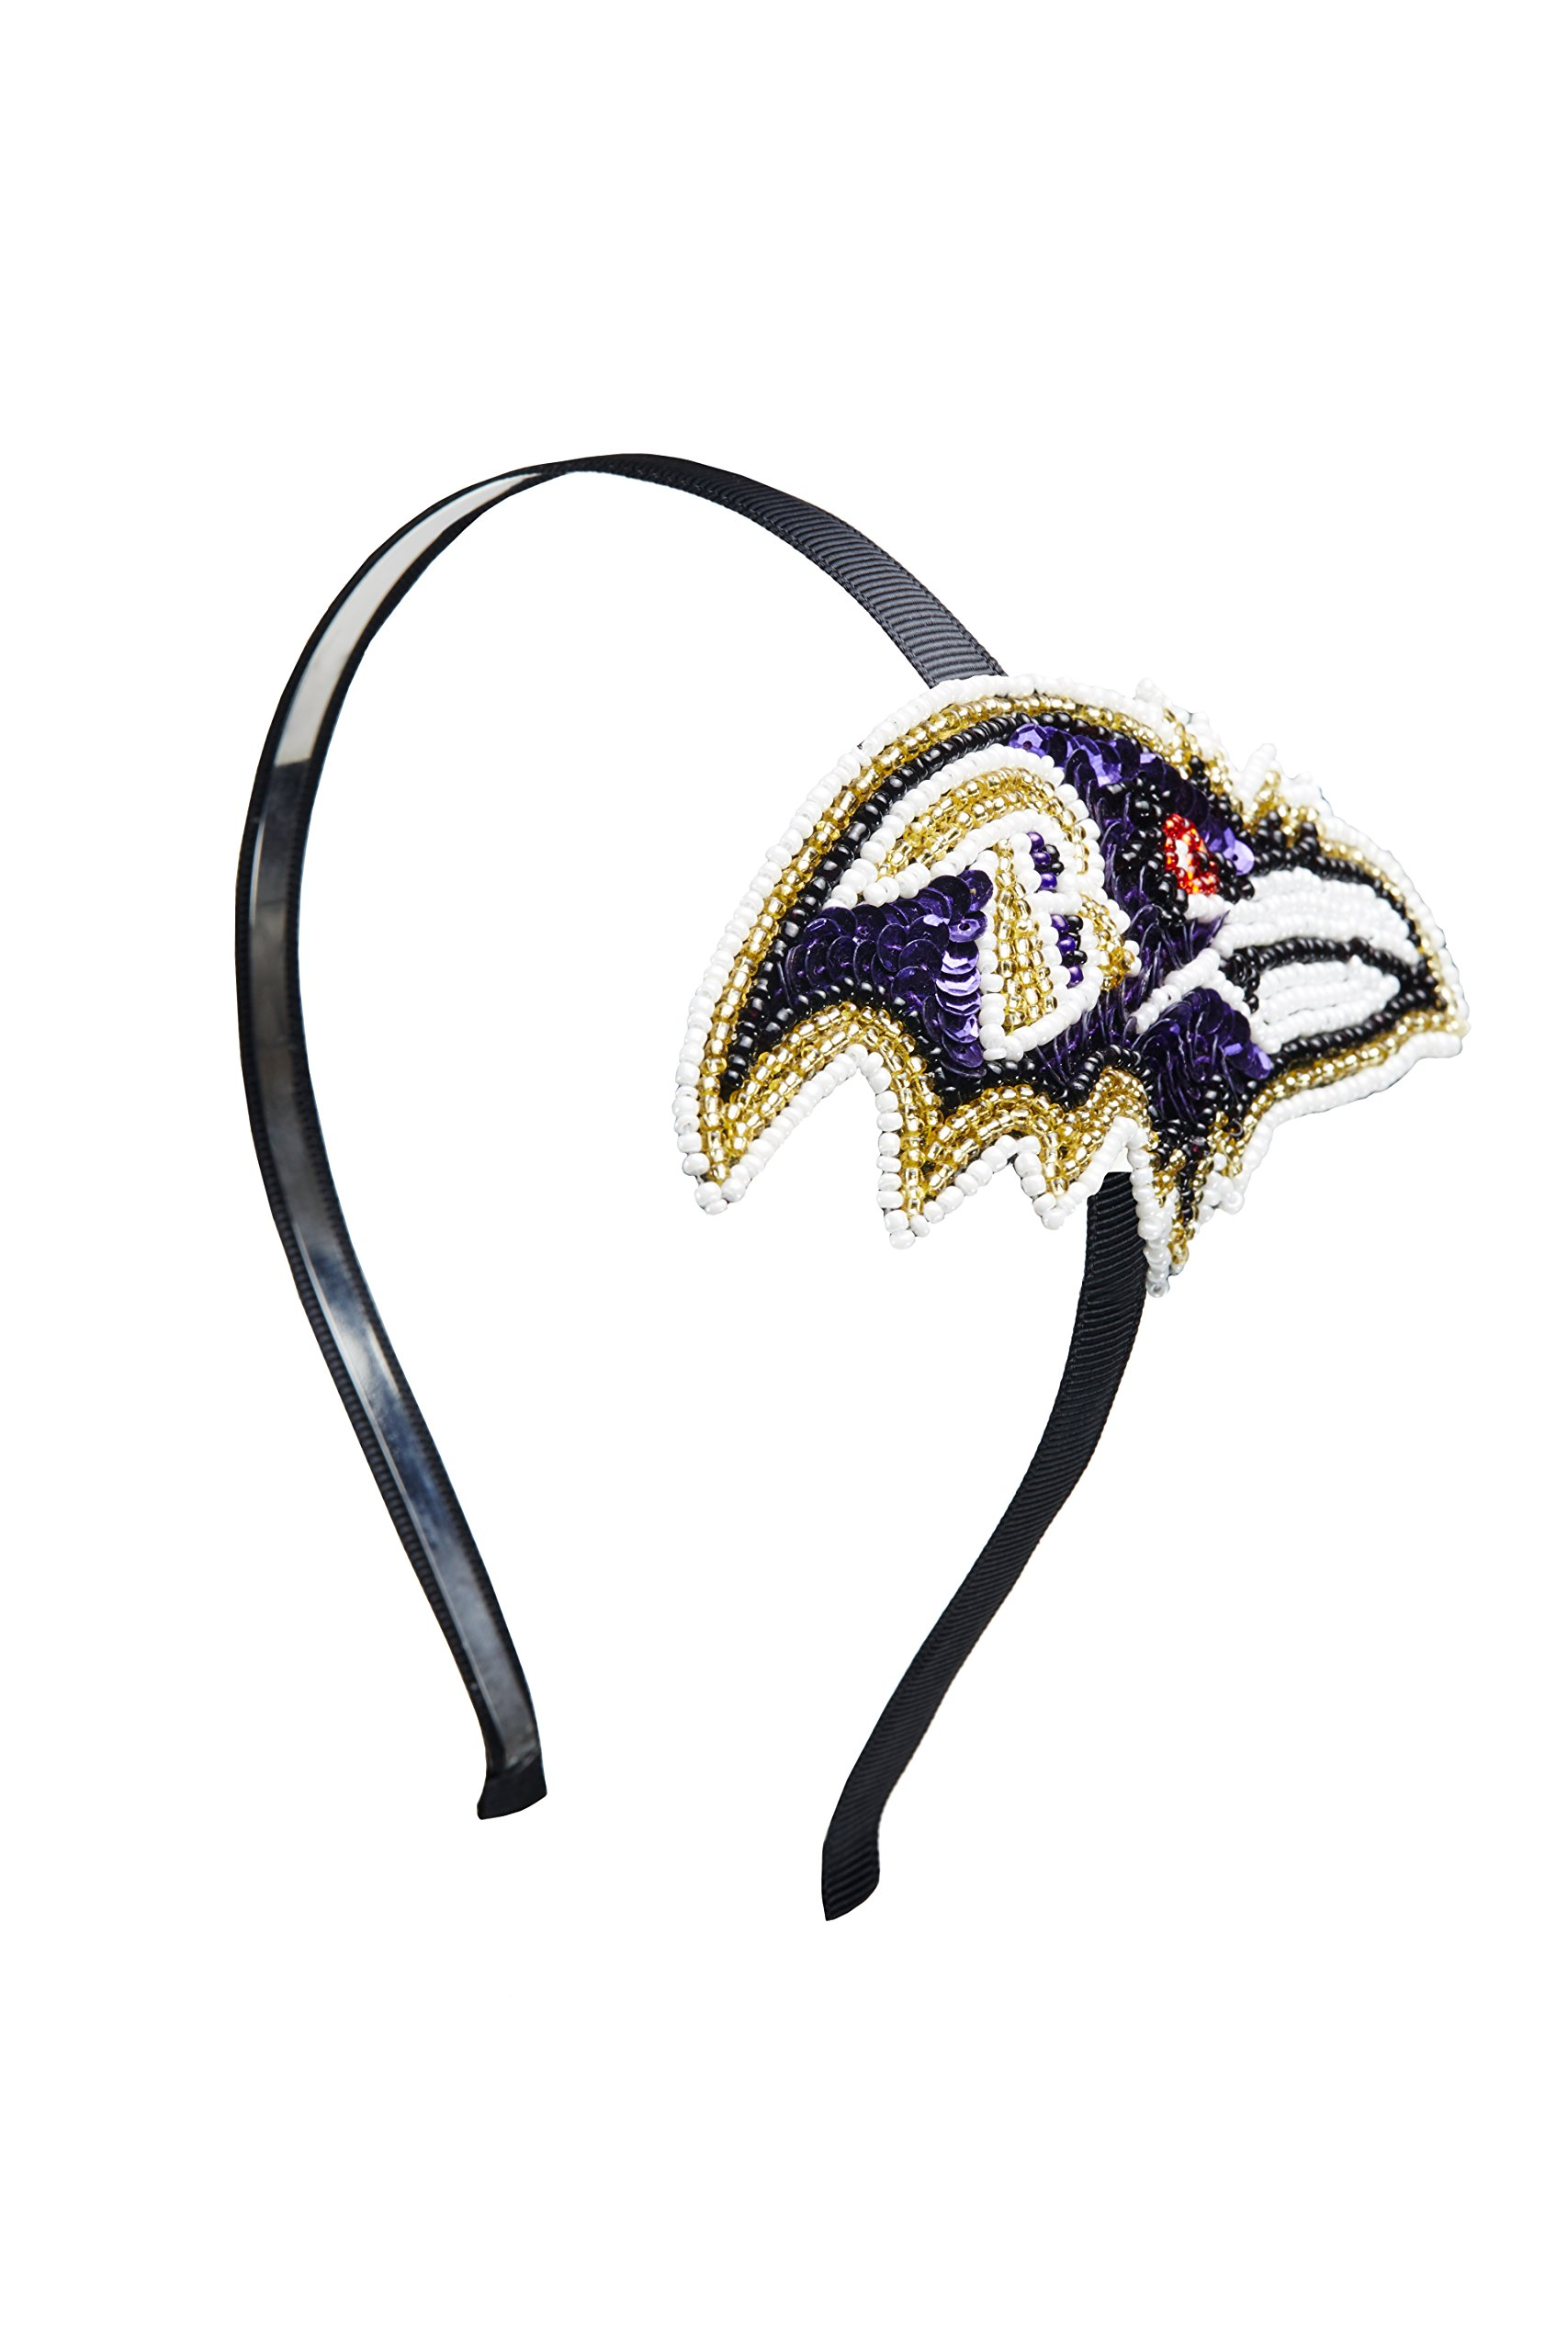 aminco NFL Baltimore Ravens The Grace Collection Sequins and Beads Horseshoe Hairband, Purple by aminco